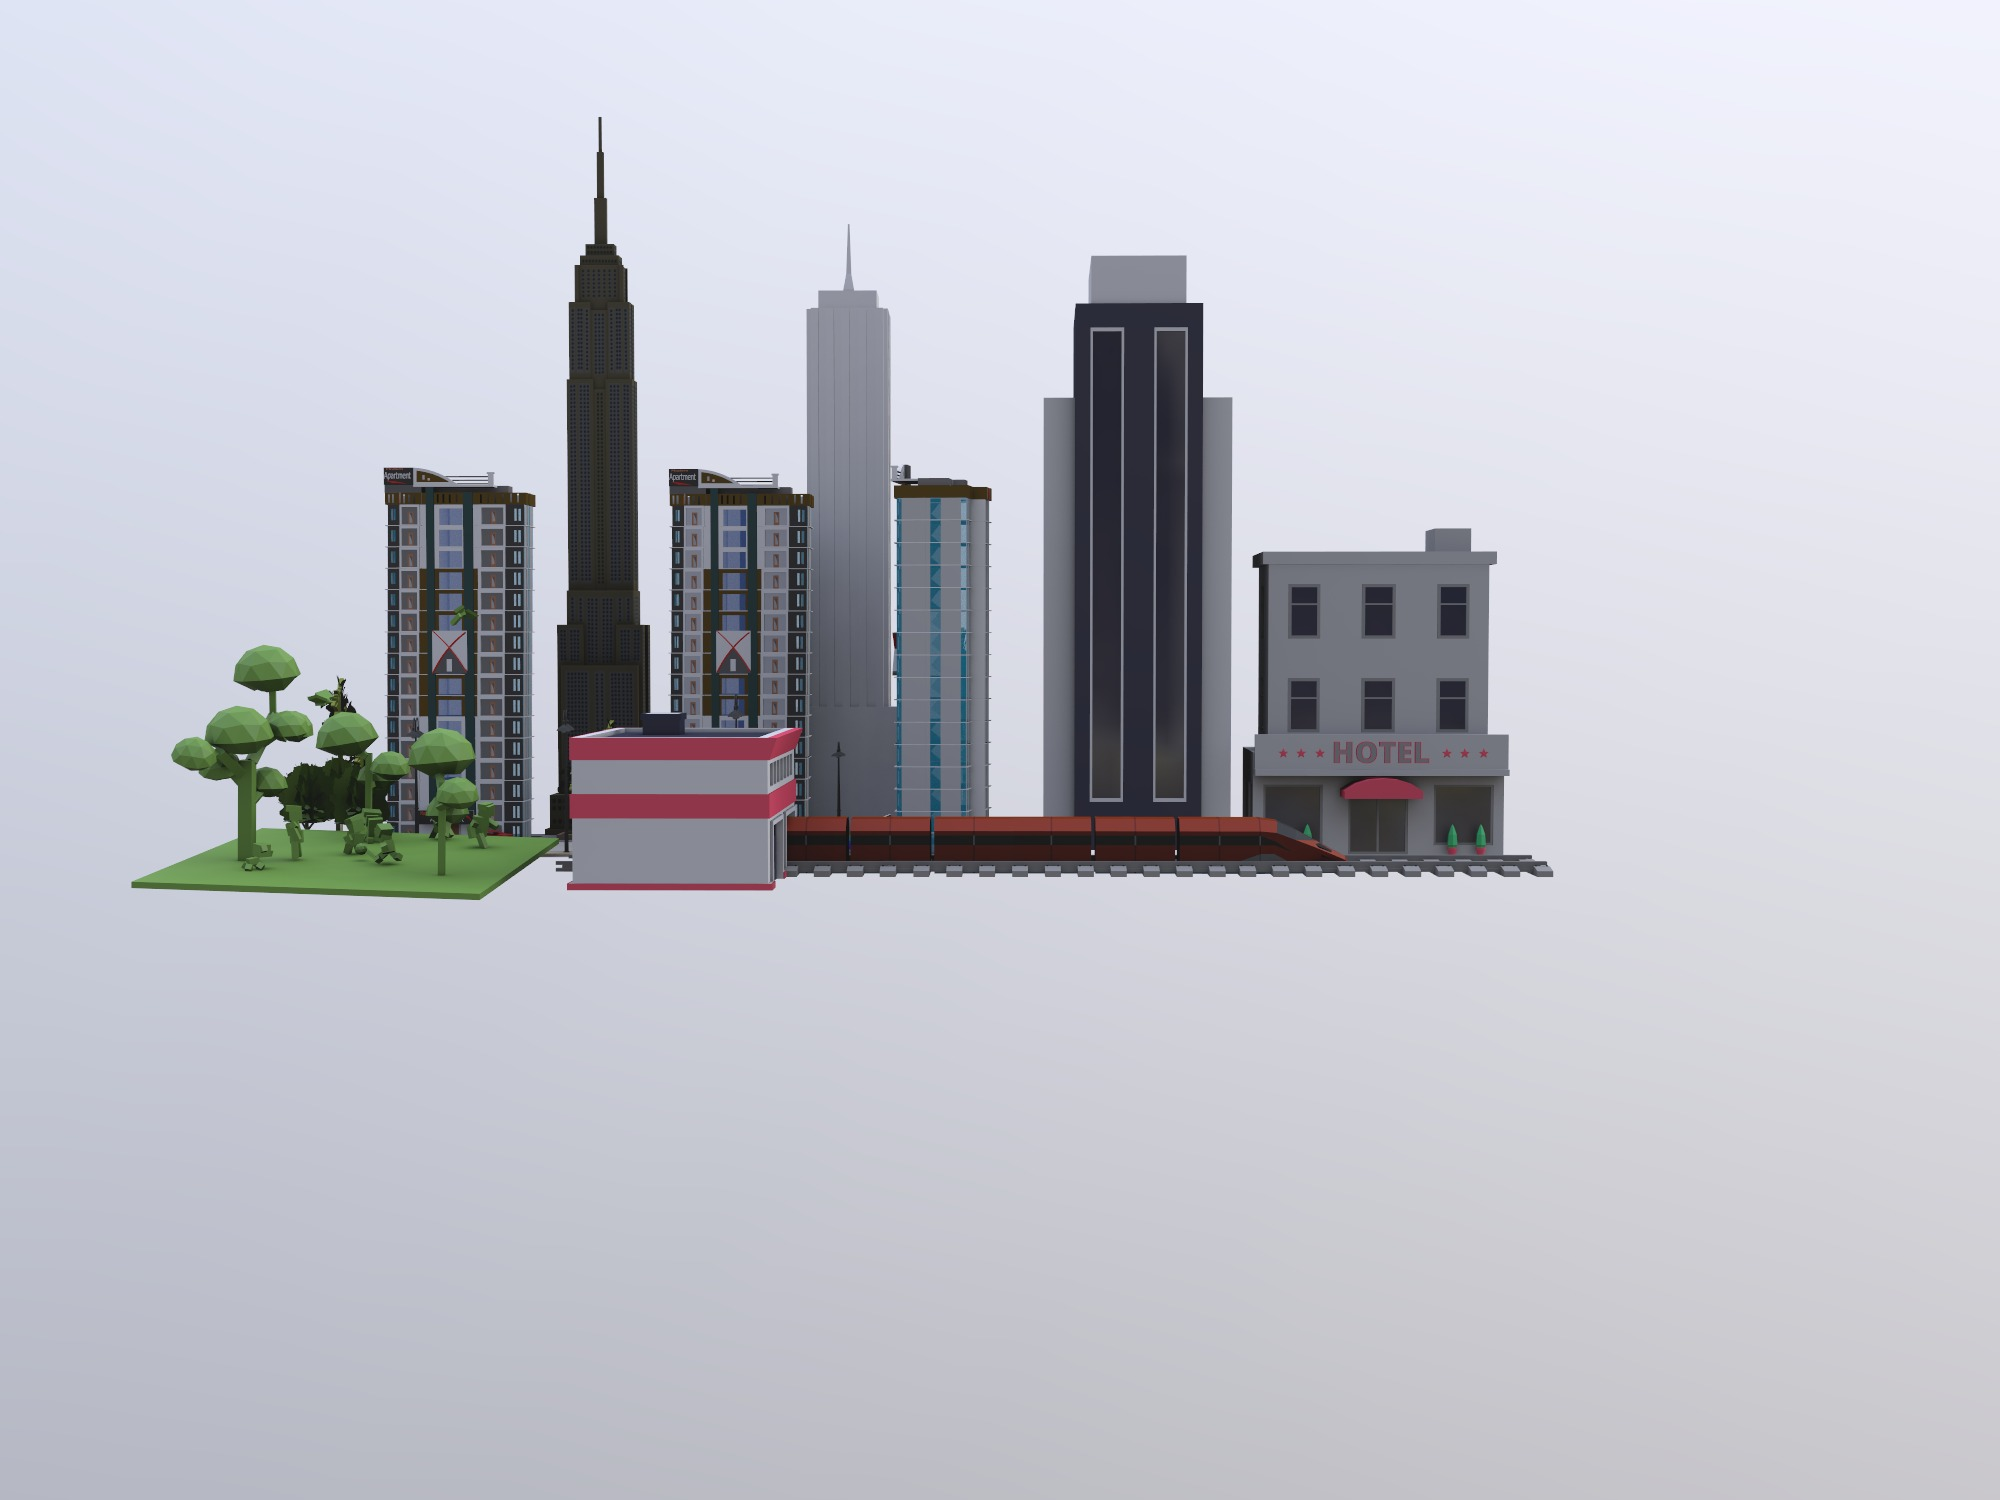 Future Philly - 3D design by 23dau on Dec 11, 2018